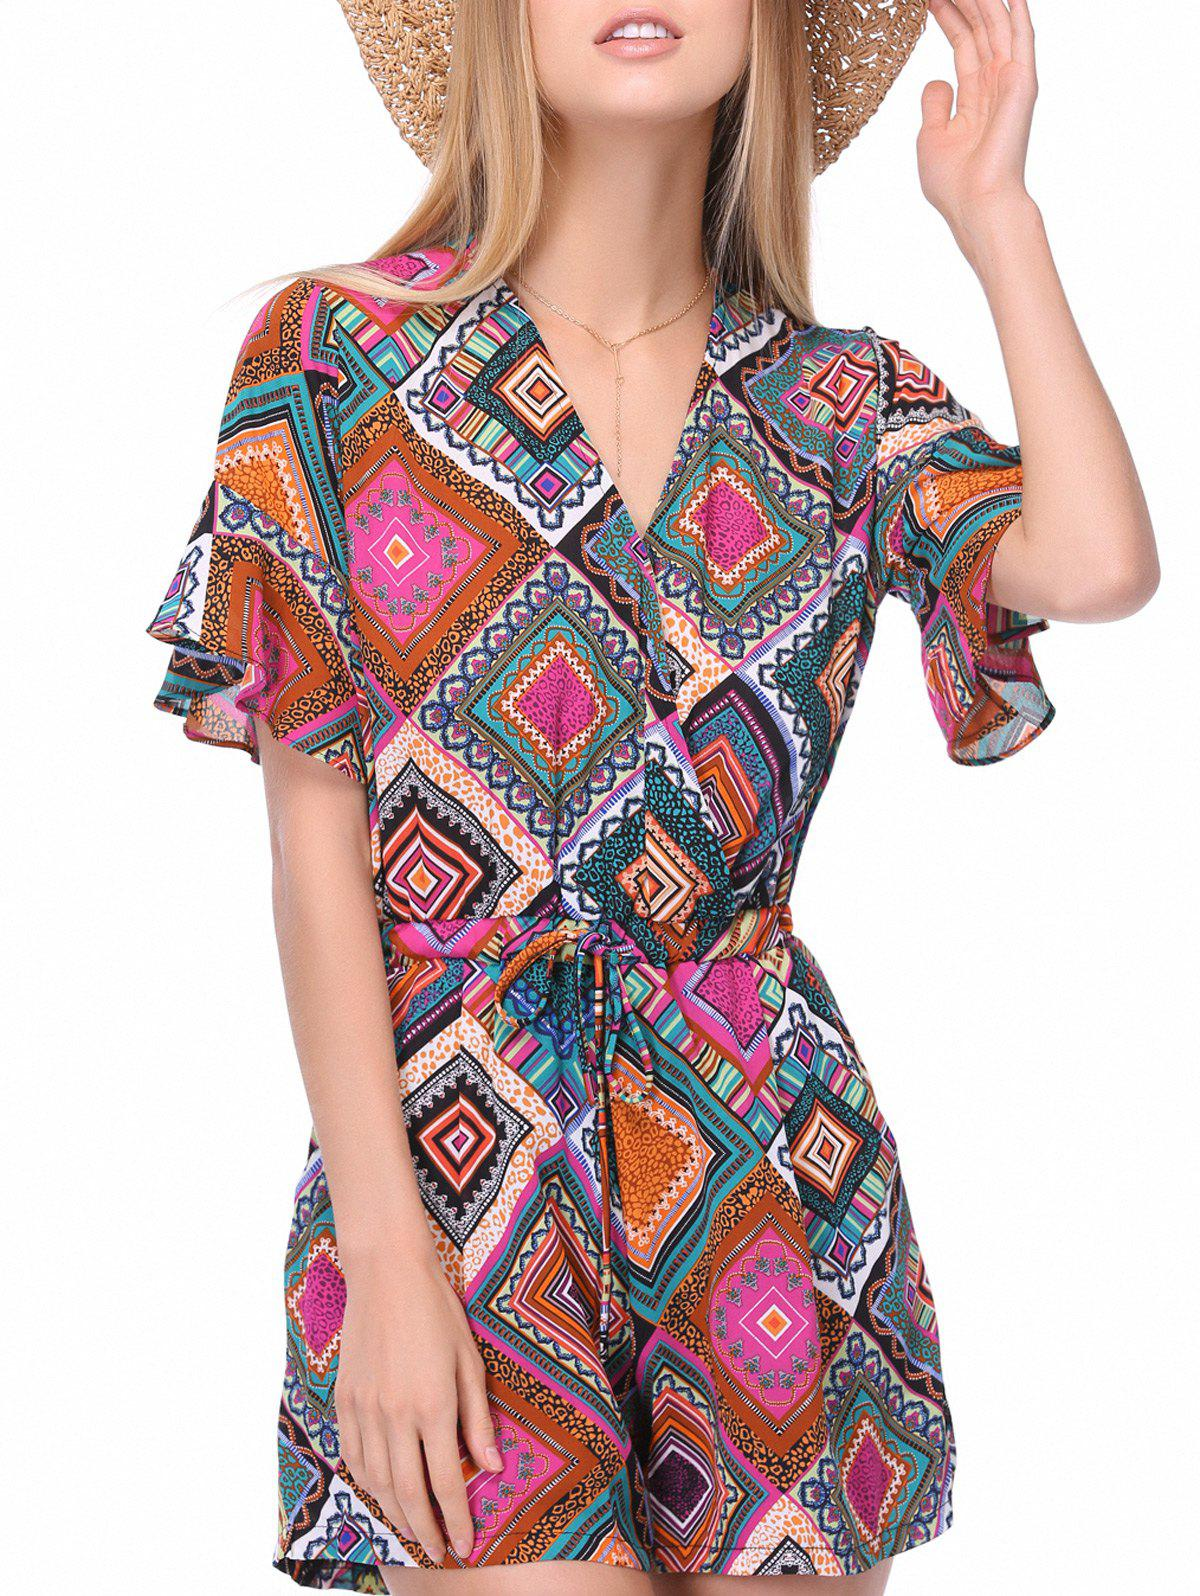 Ethnic Women's V-Neck Print Drawstring Romper - ONE SIZE(FIT SIZE XS TO M) COLORMIX